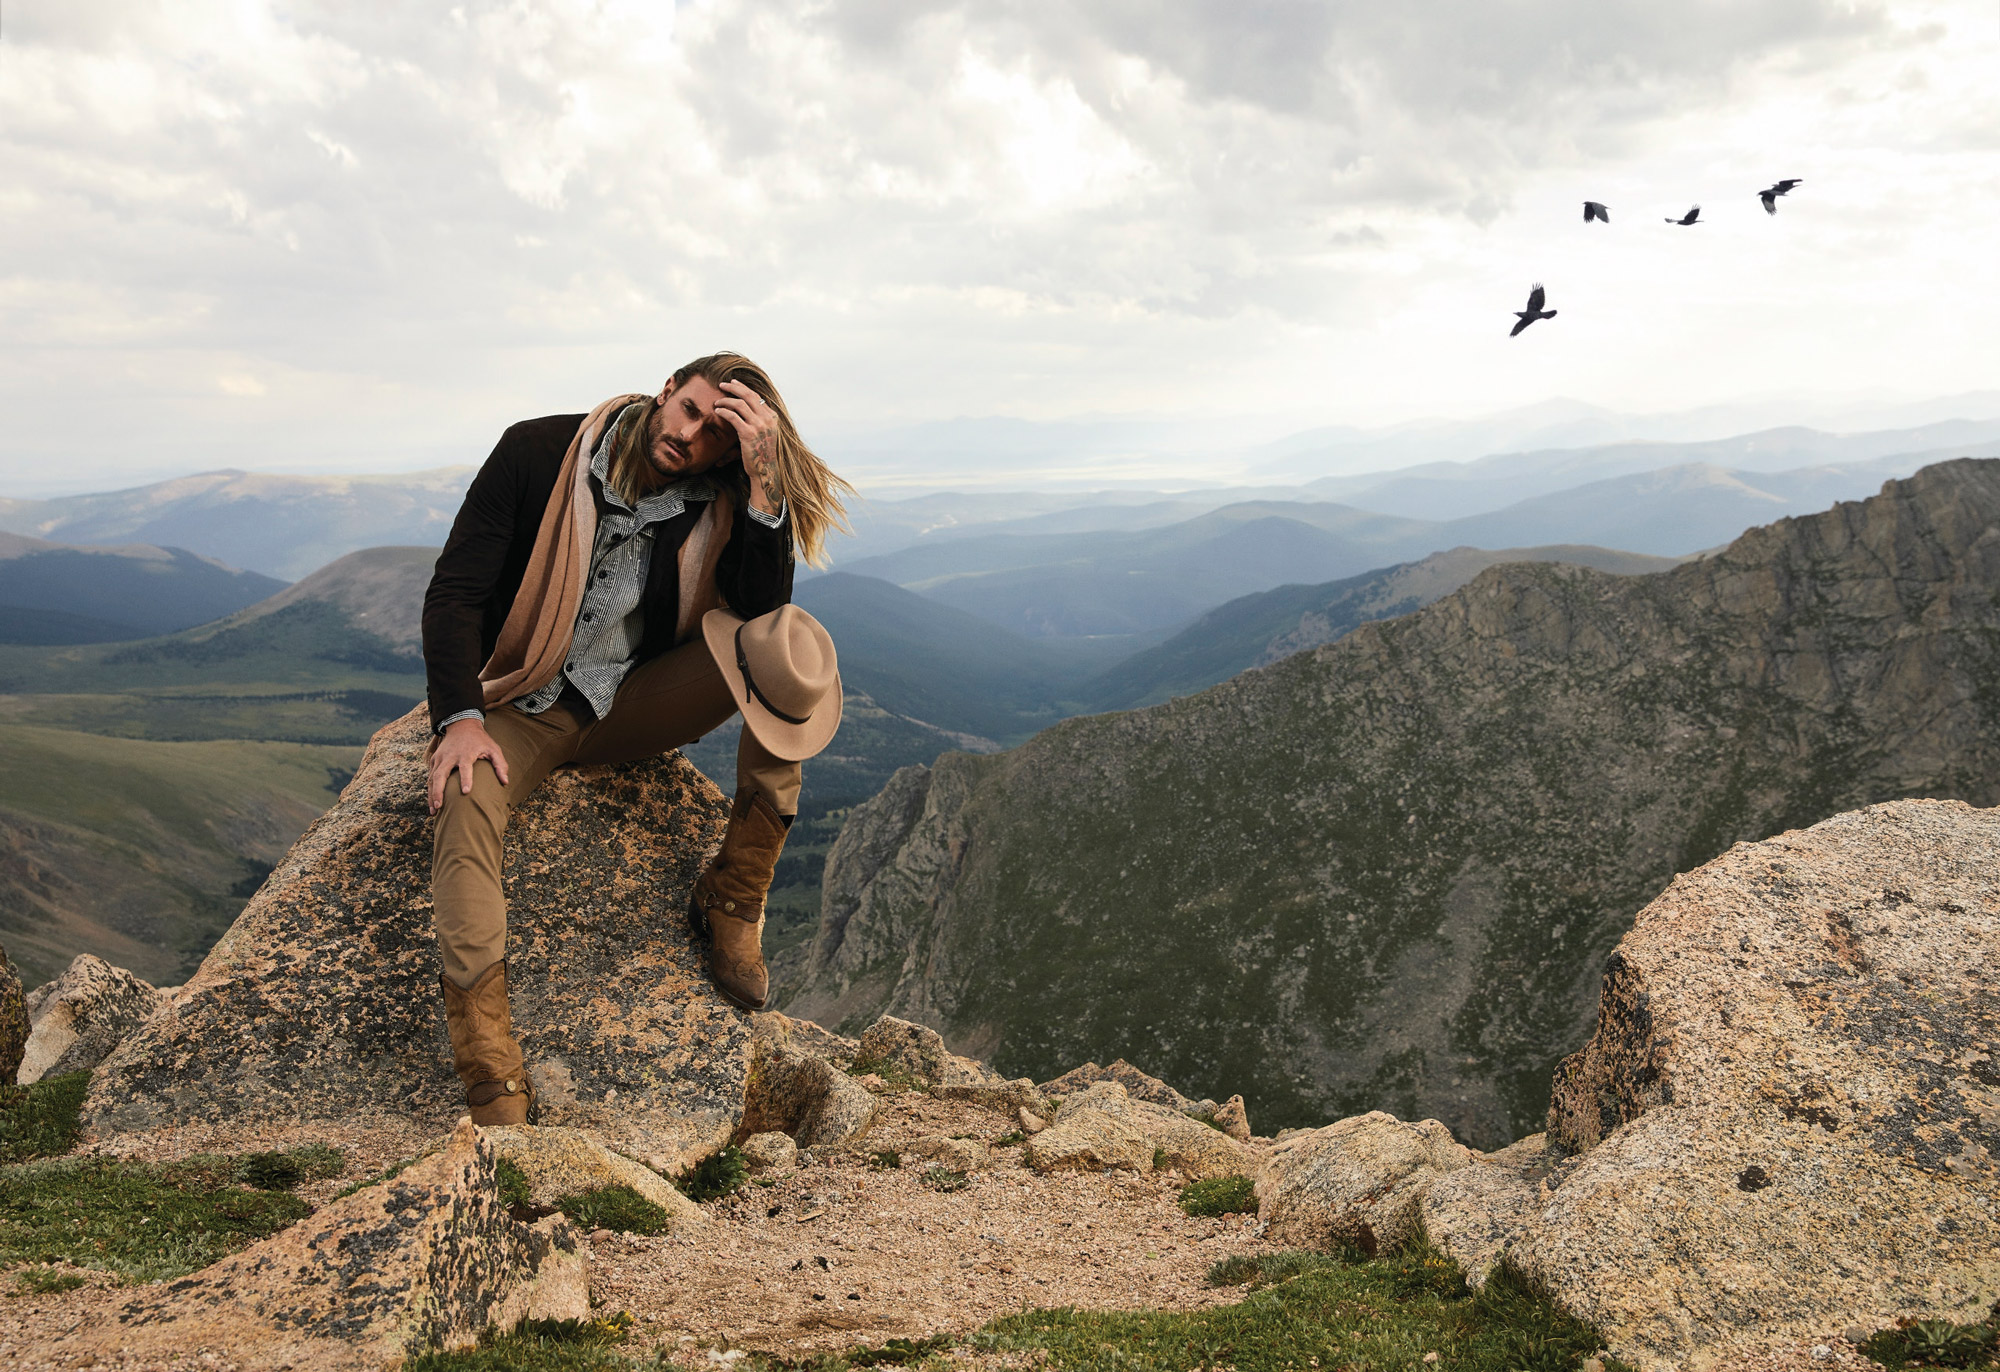 portrait of male model at mt evans in colorado